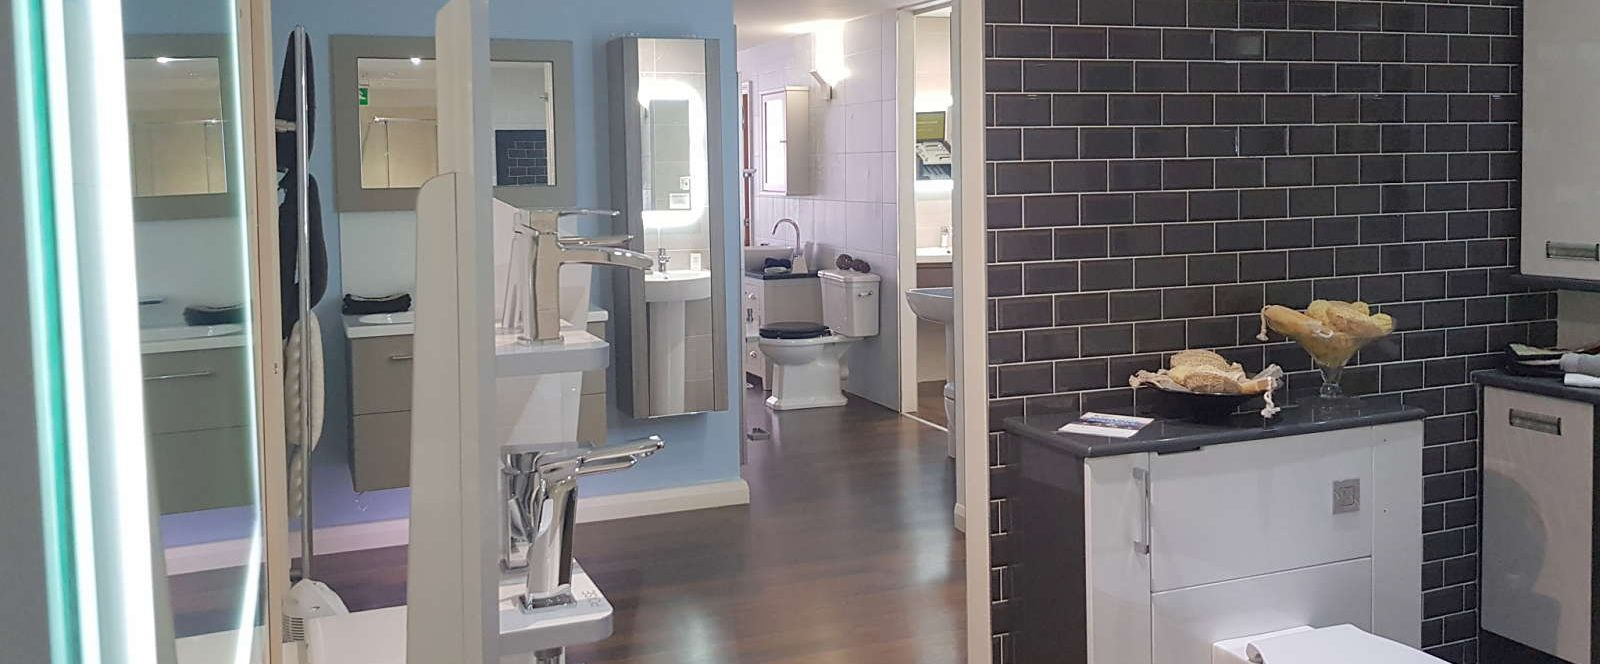 Janus Interiors bathroom showroom in Bingley